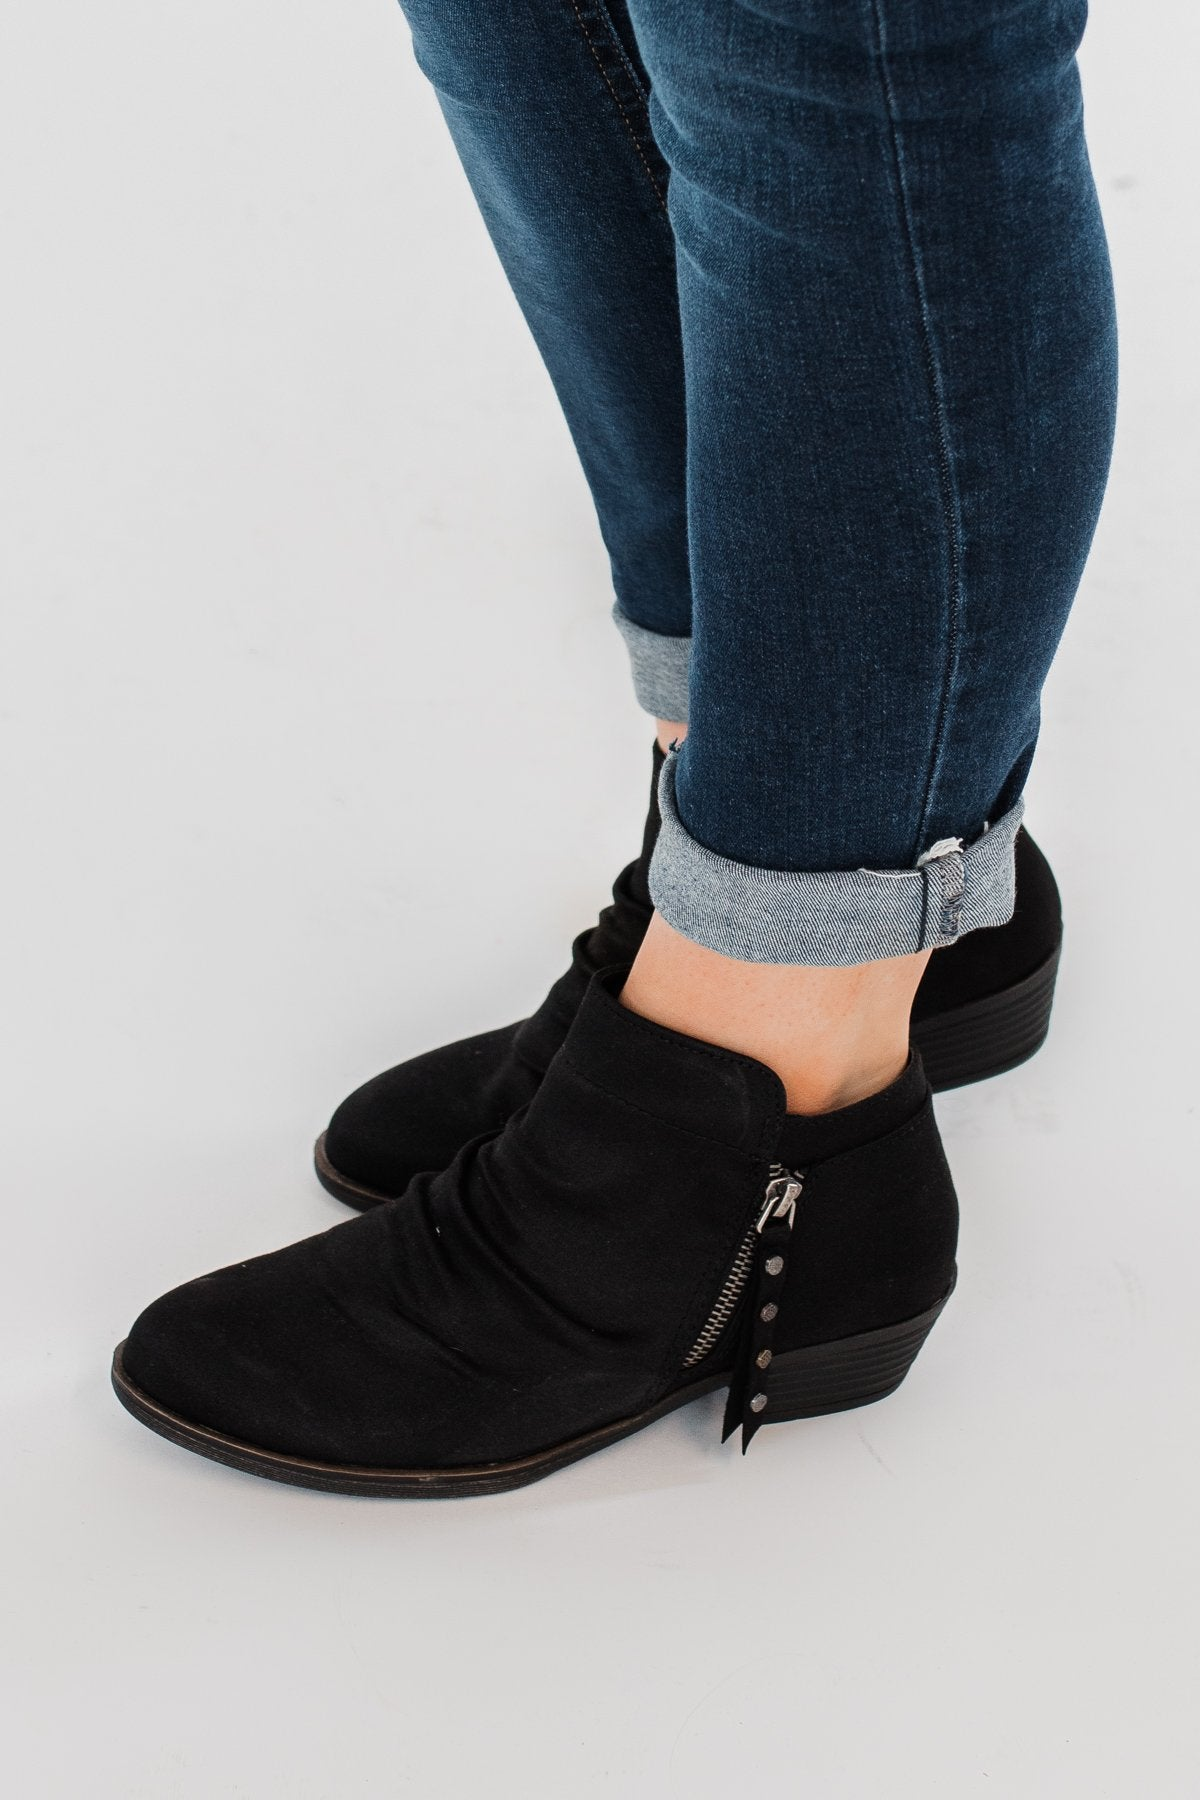 Rampage Wallace Booties- Black – The